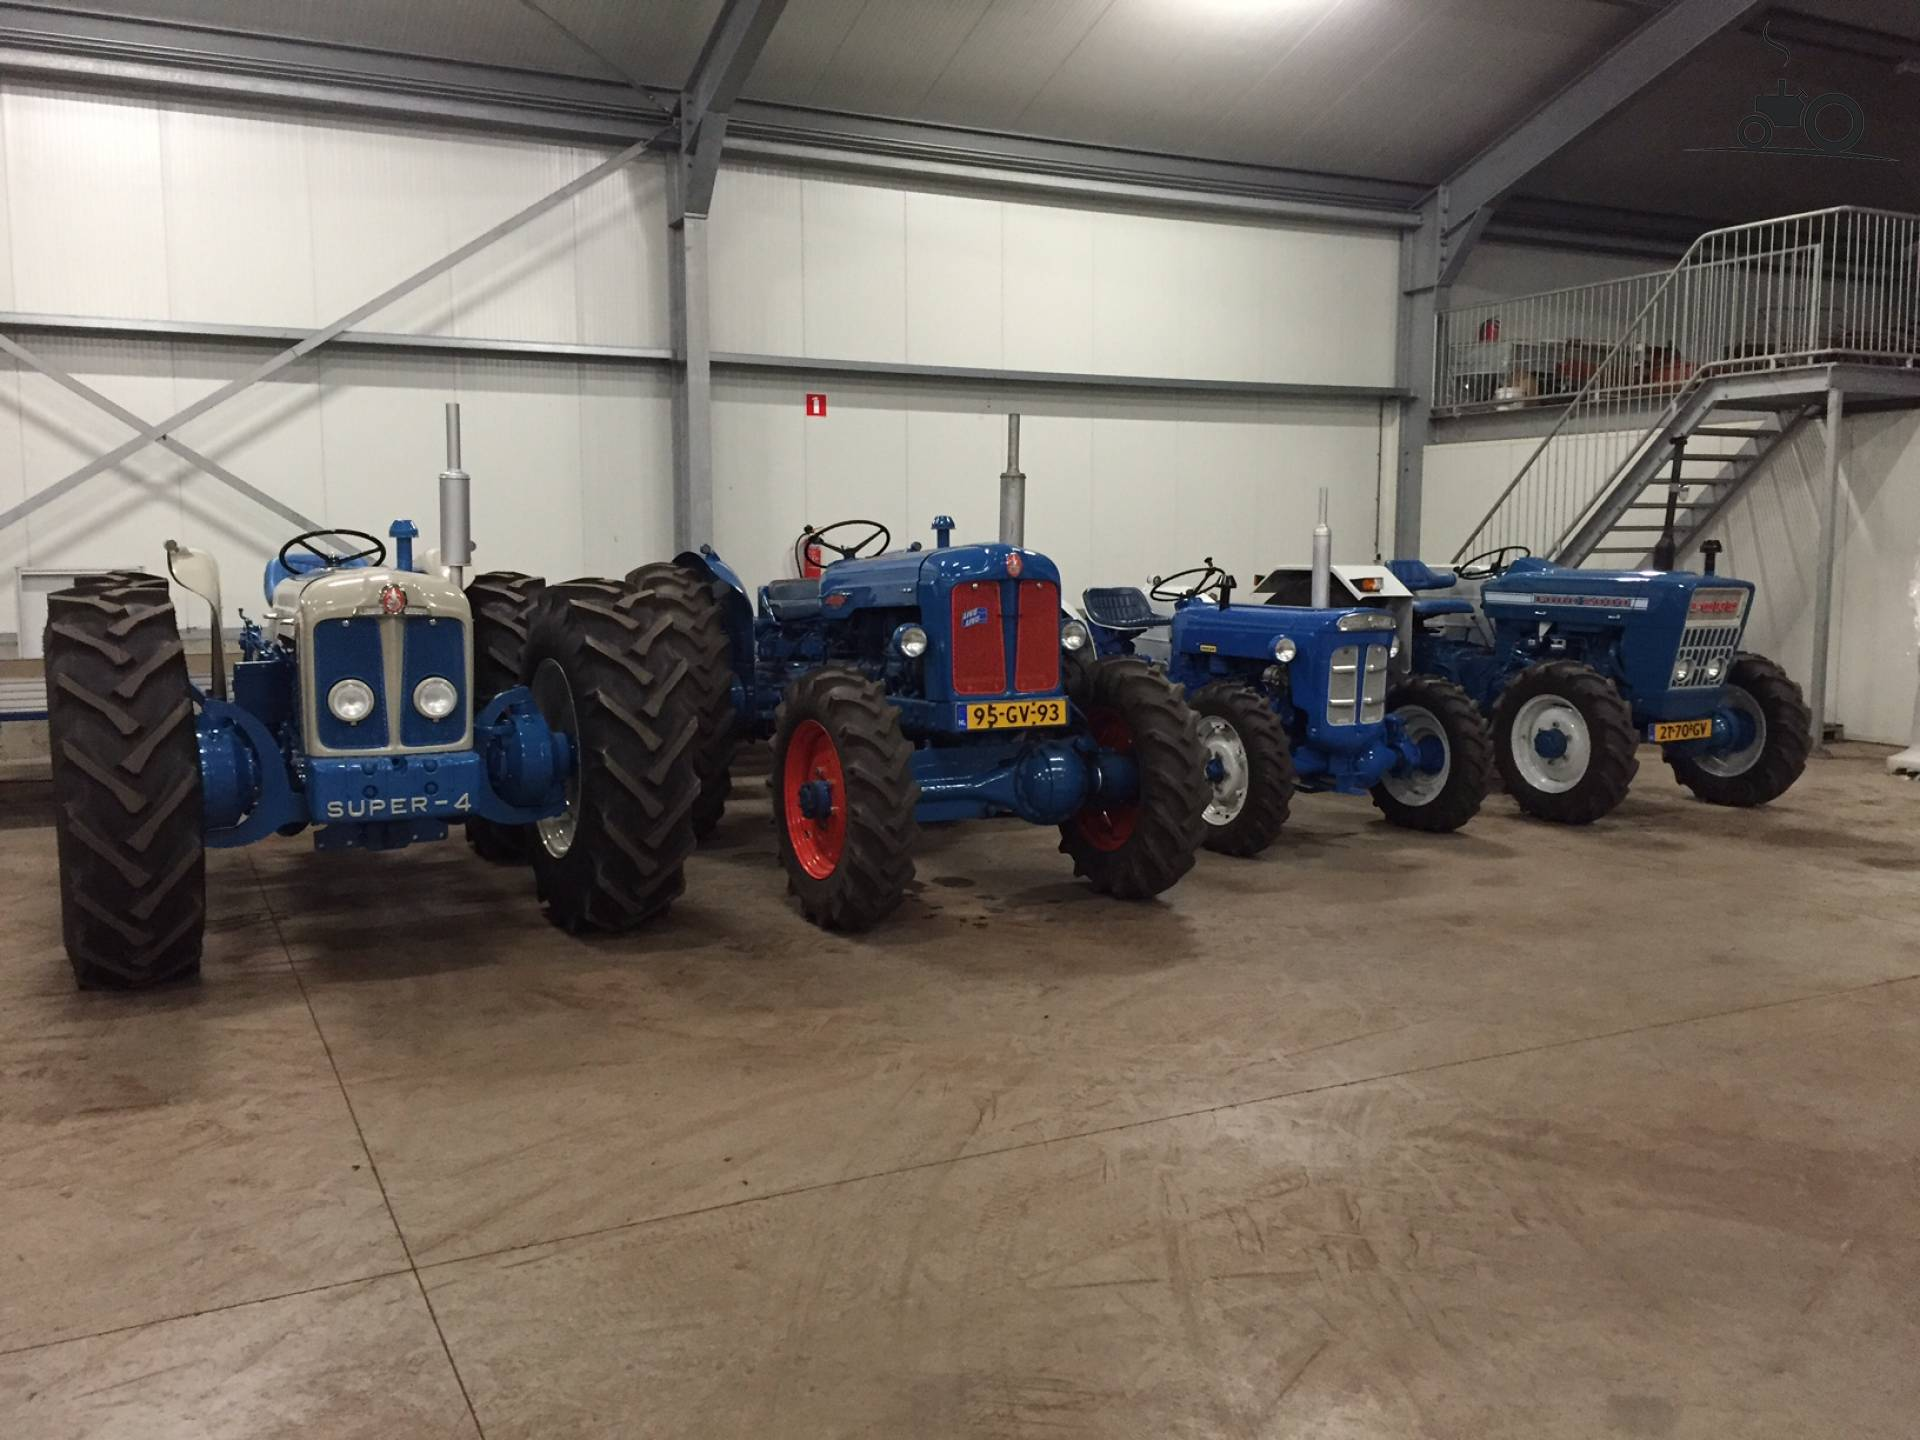 fordson tractor specs with 946111 on Wiring Diagram For Fordson Dexta Tractor as well N7 likewise 2000 1973 Agricultural vehicle Tractor moreover Ford 8n For Sale furthermore 946111.